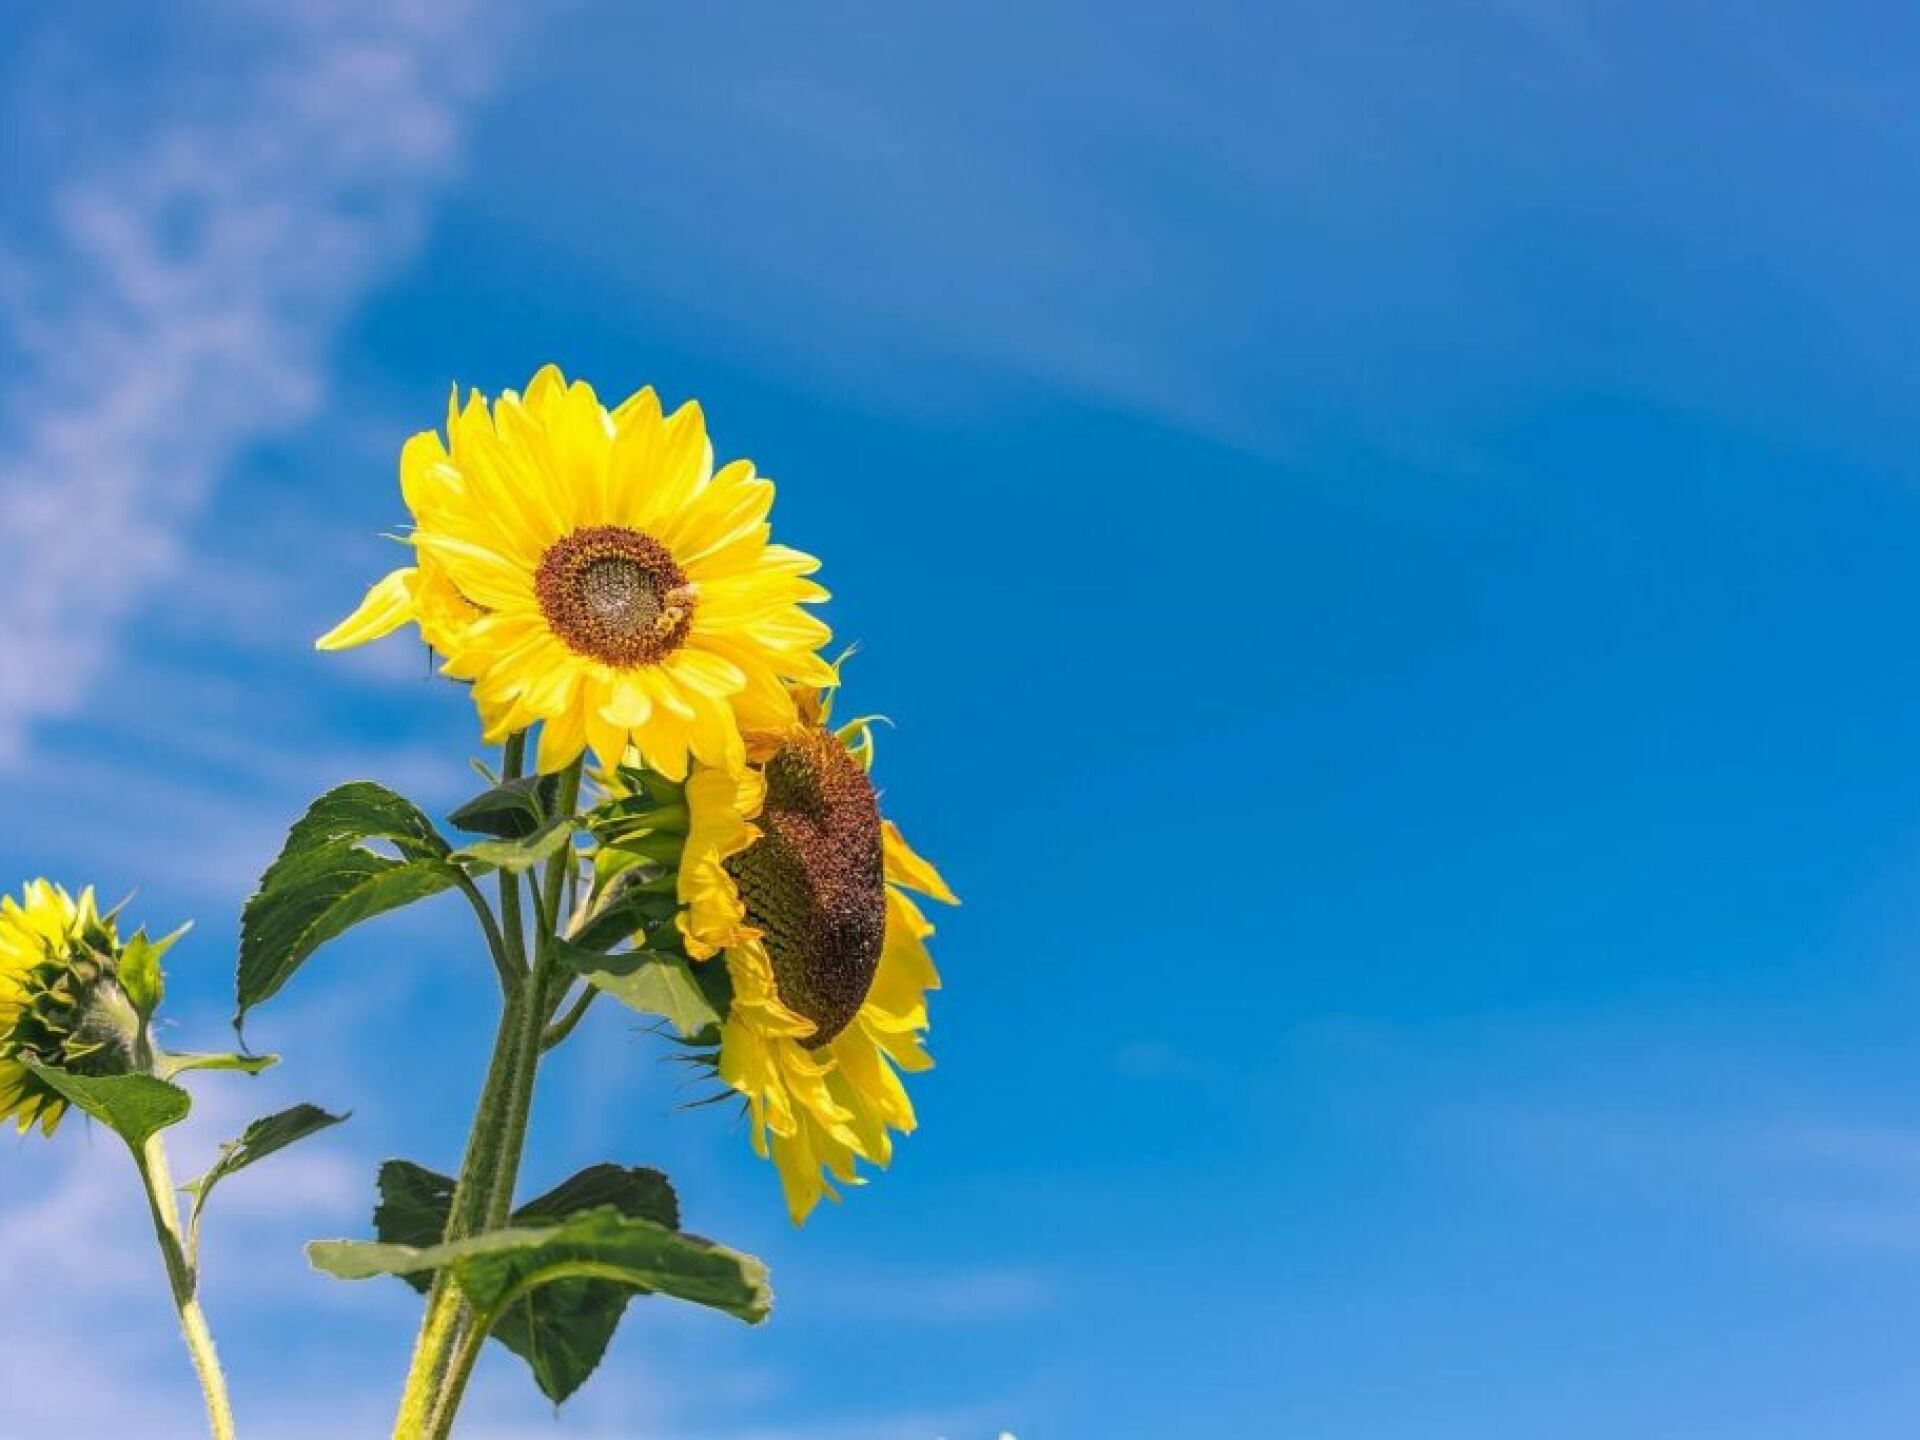 Close up of three sunflowers with blue sky in background.